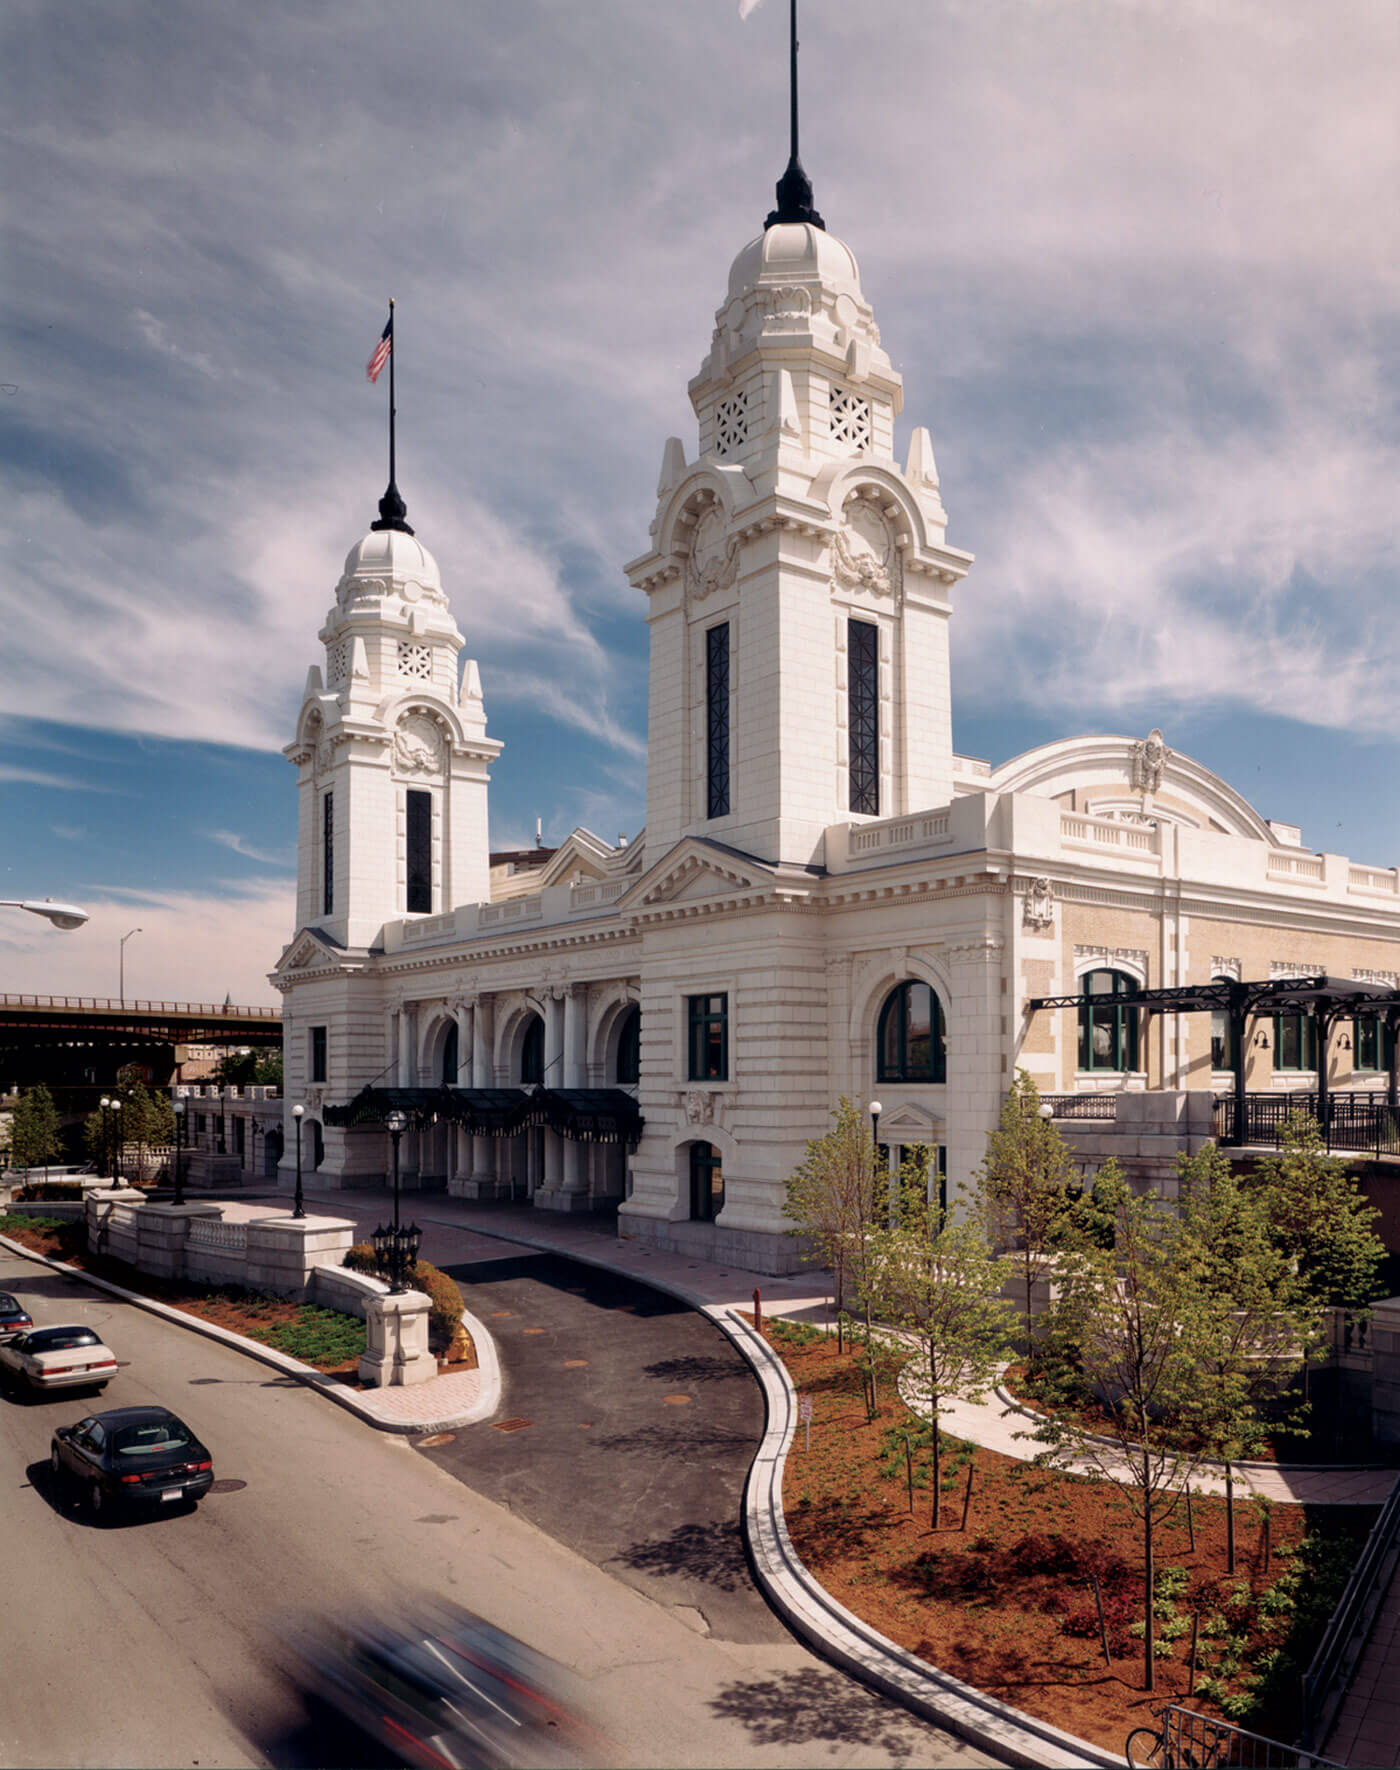 Street entrance to Worcester's Union Station Intermodal Transportation Center from the right, characterized by its two gleaming white towers.